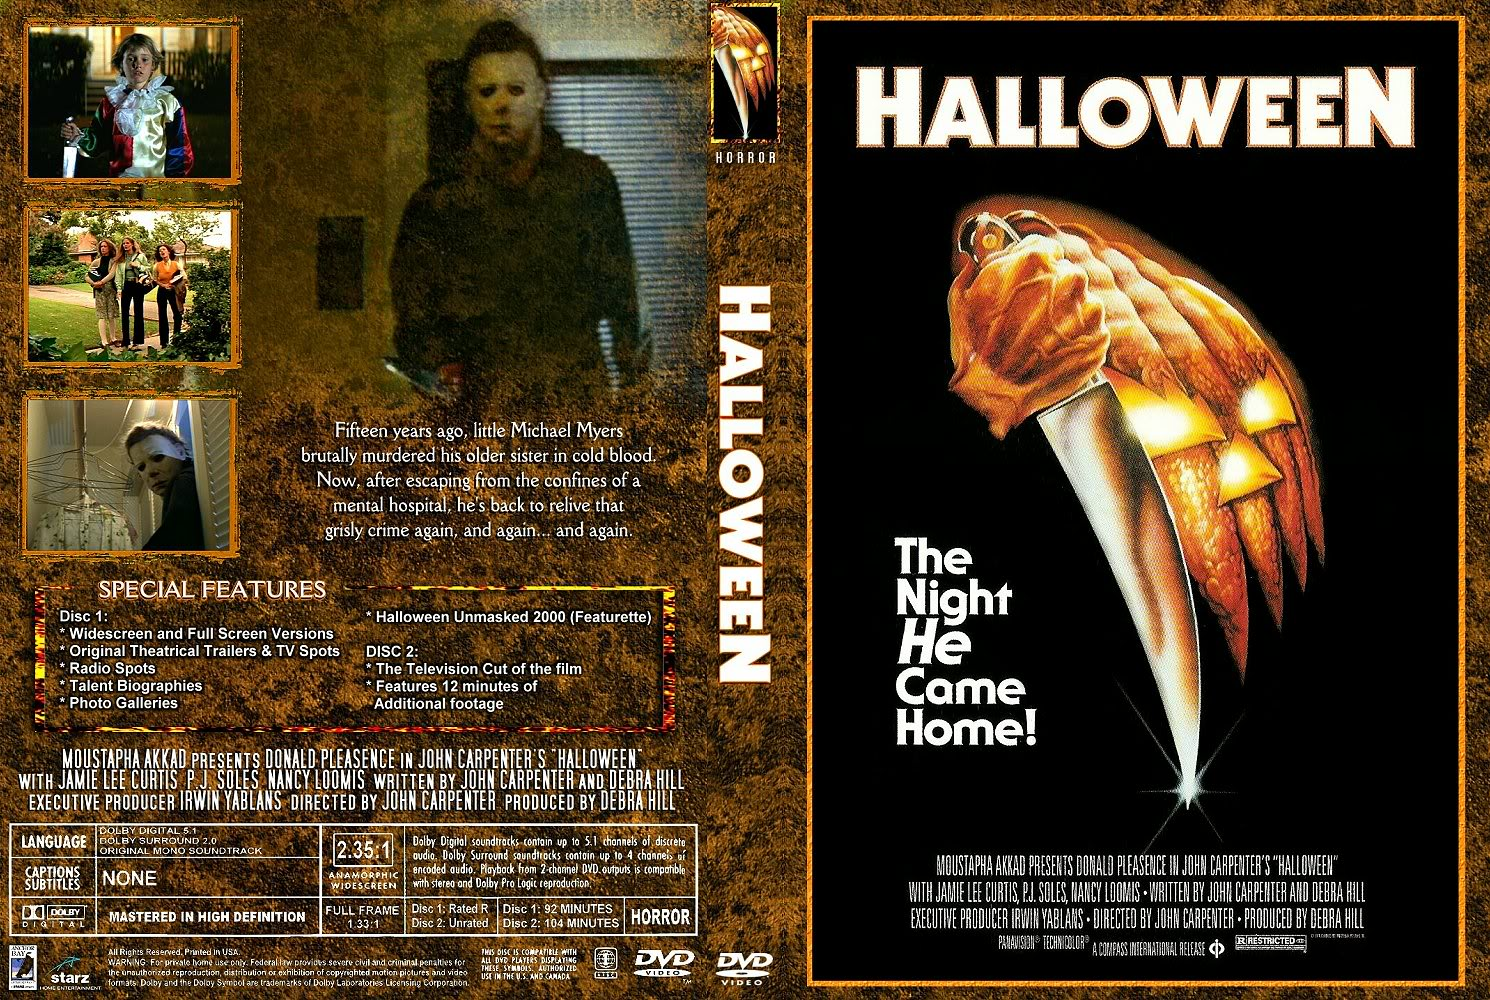 The Horrors Of Halloween: HALLOWEEN (1978) Newspaper Ads, VHS, DVD And Blu-ray Covers